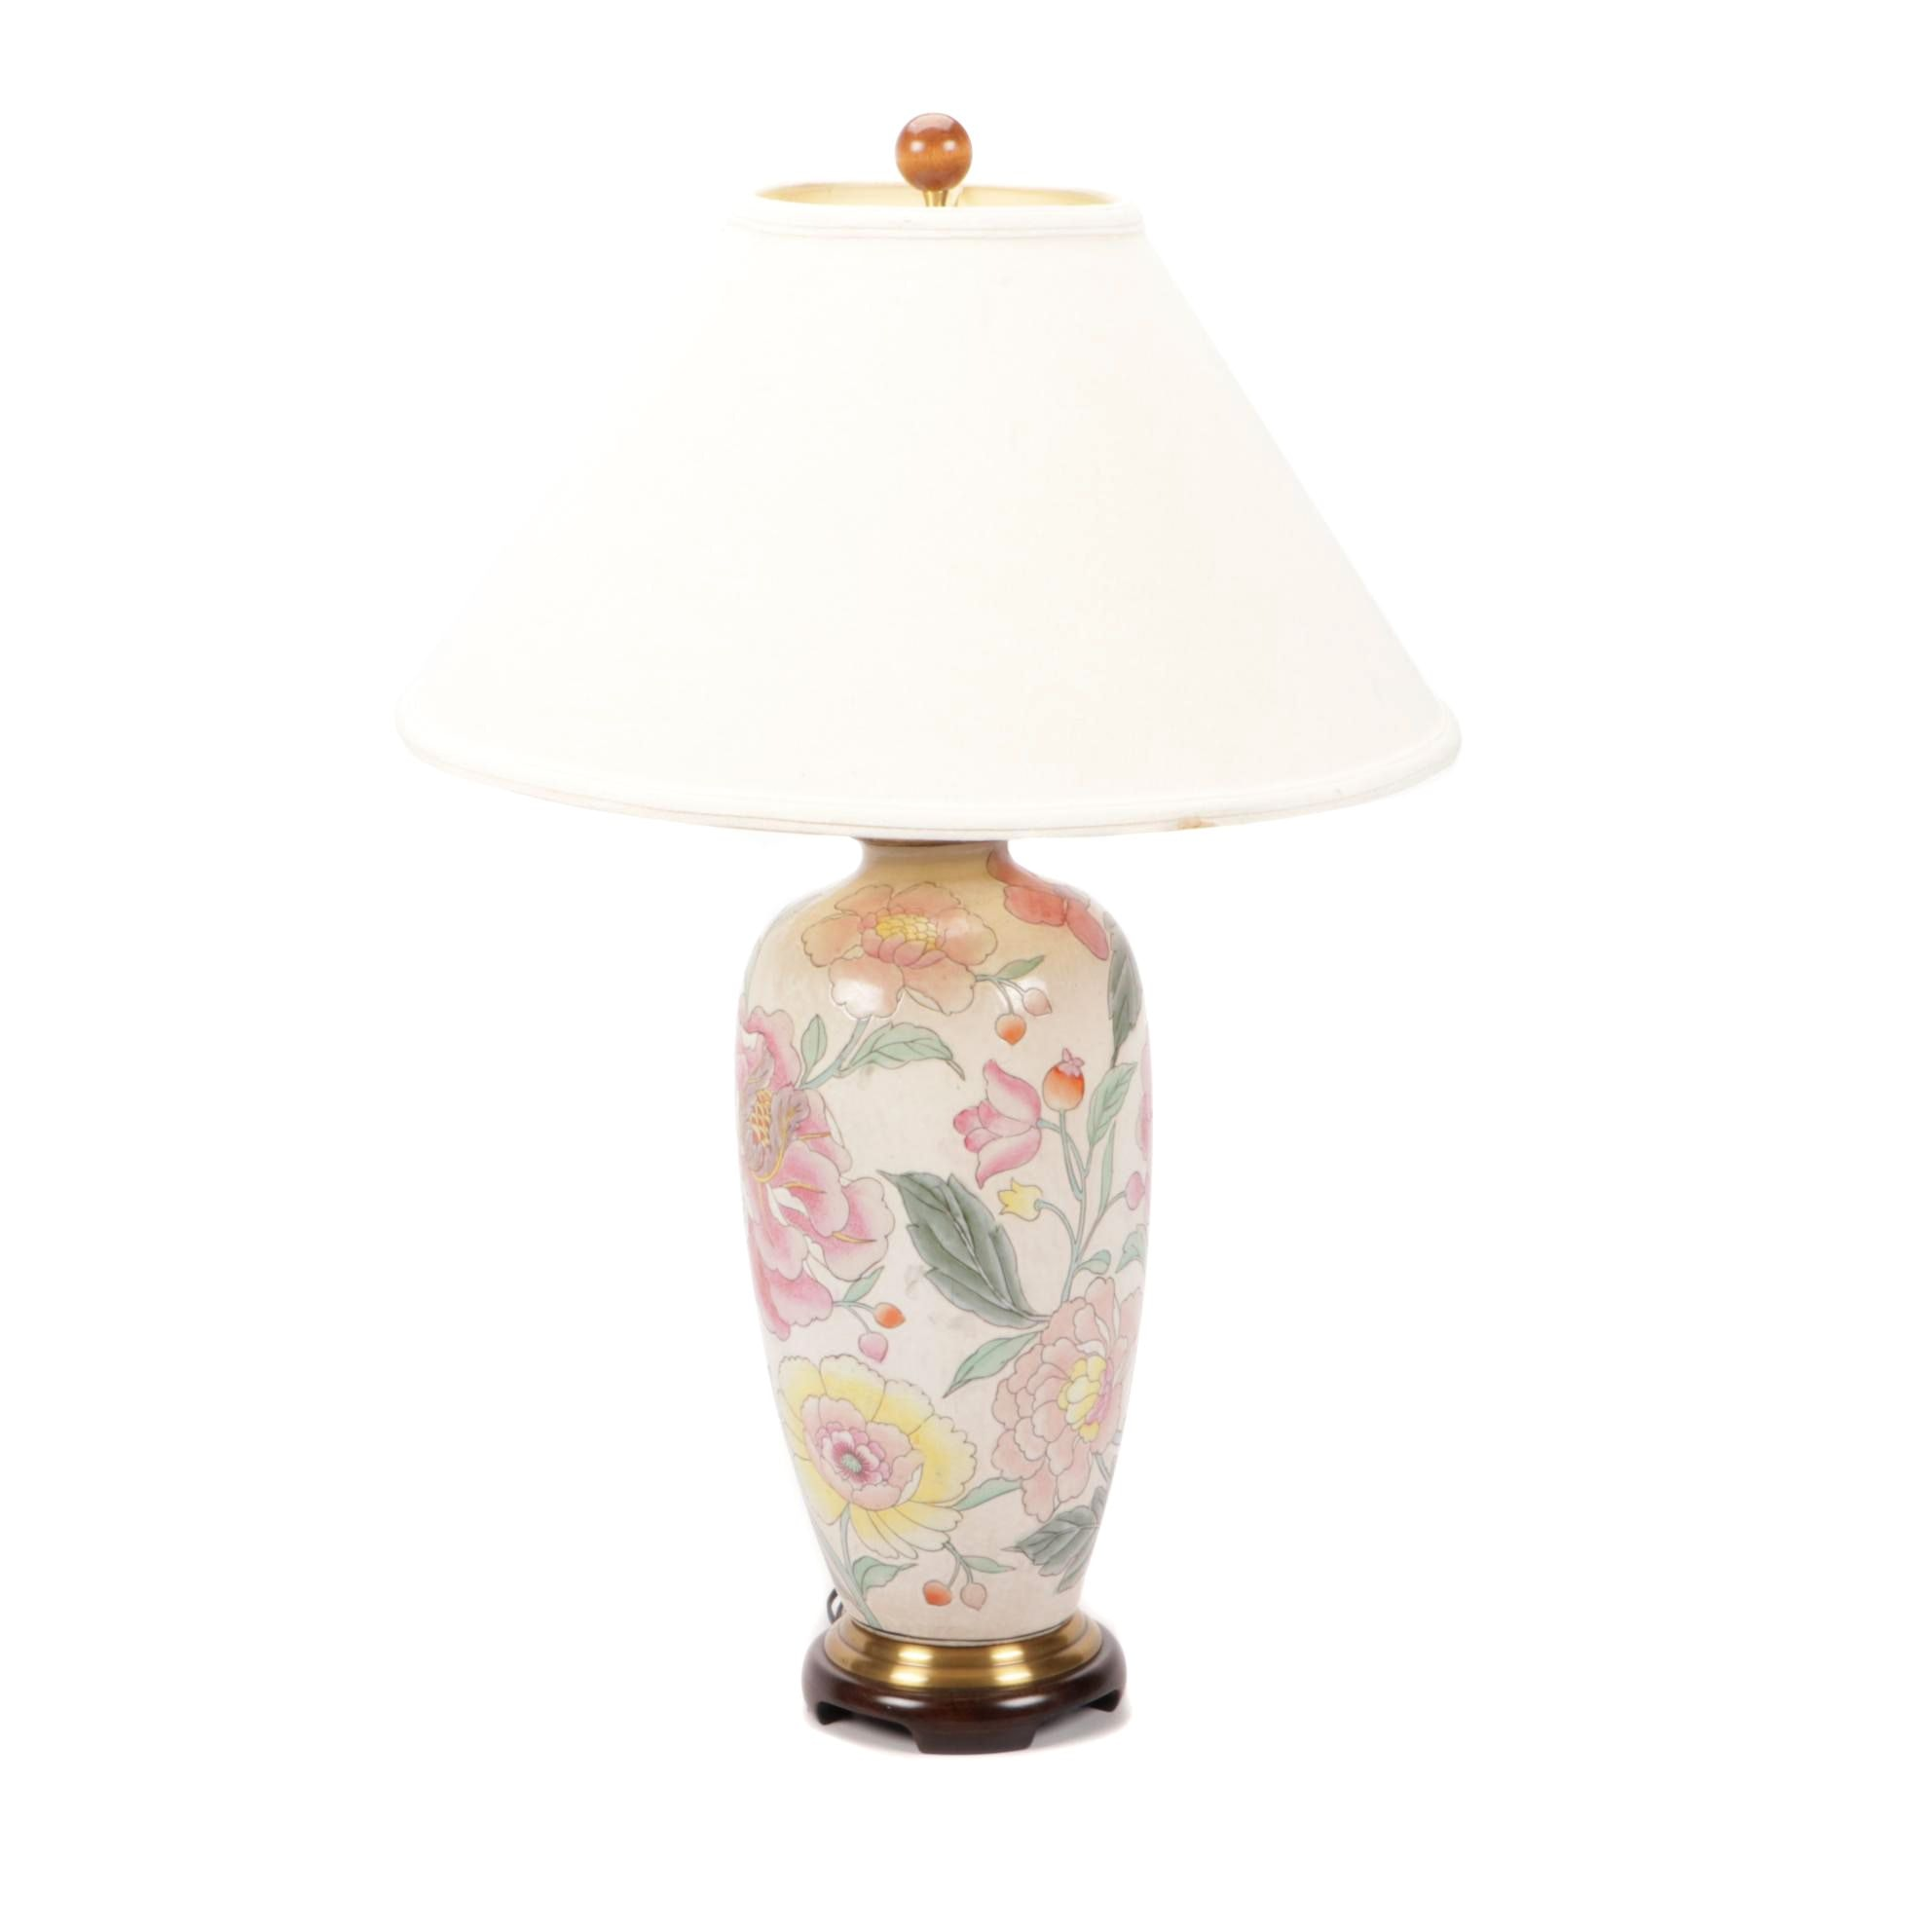 Painted Ceramic Table Lamp with Shade